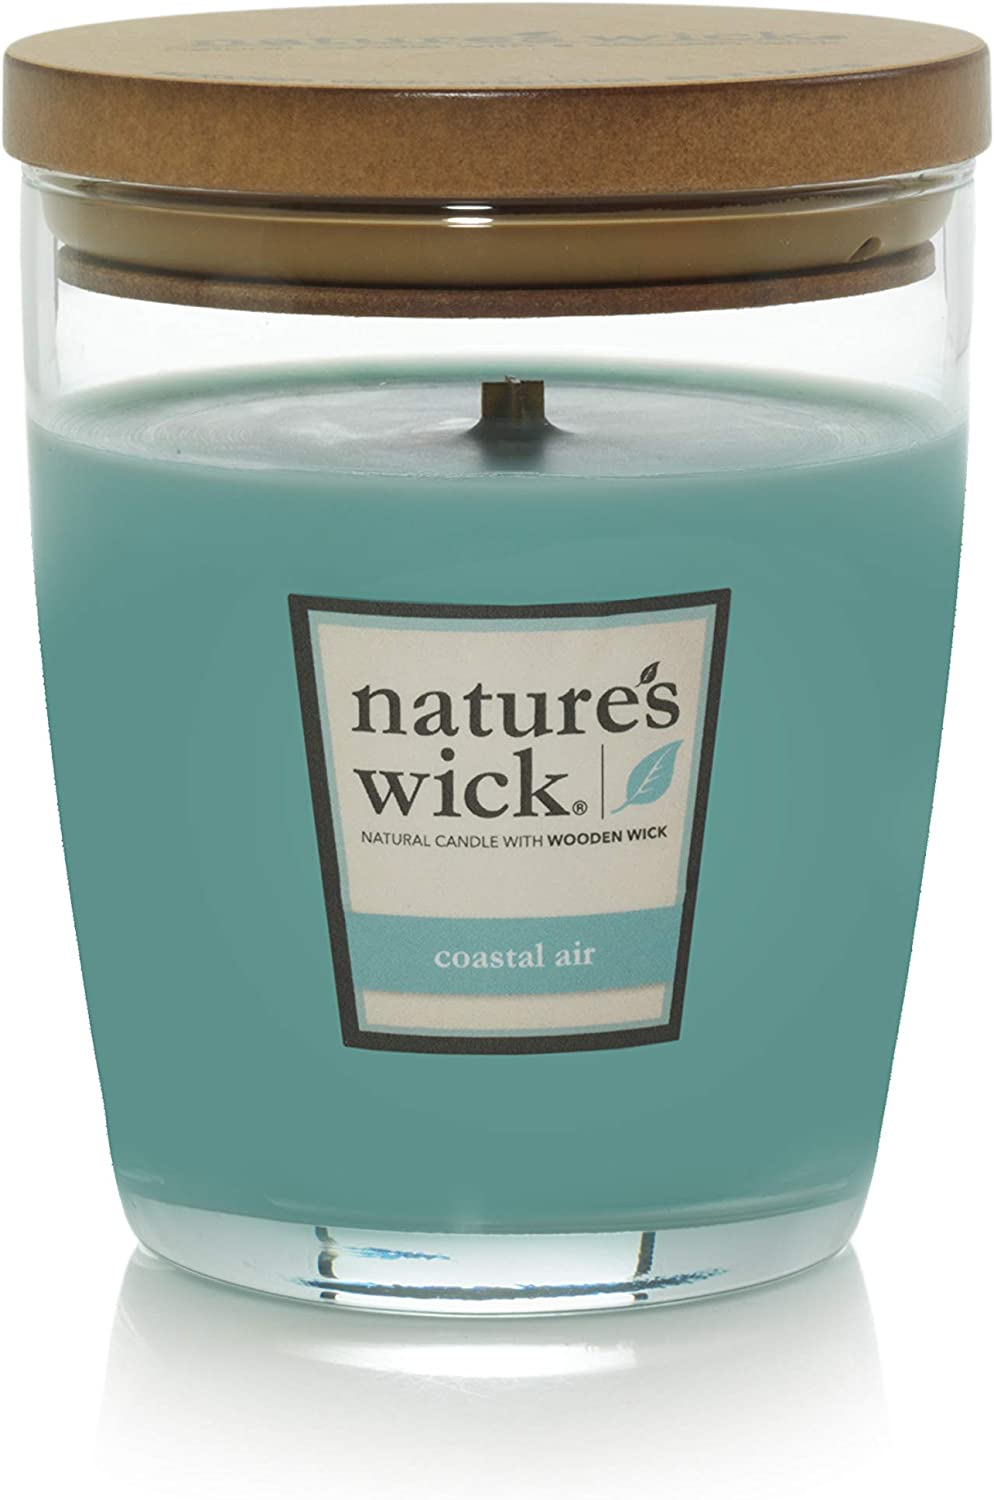 Nature's Wick Coastal Air Scented Candle